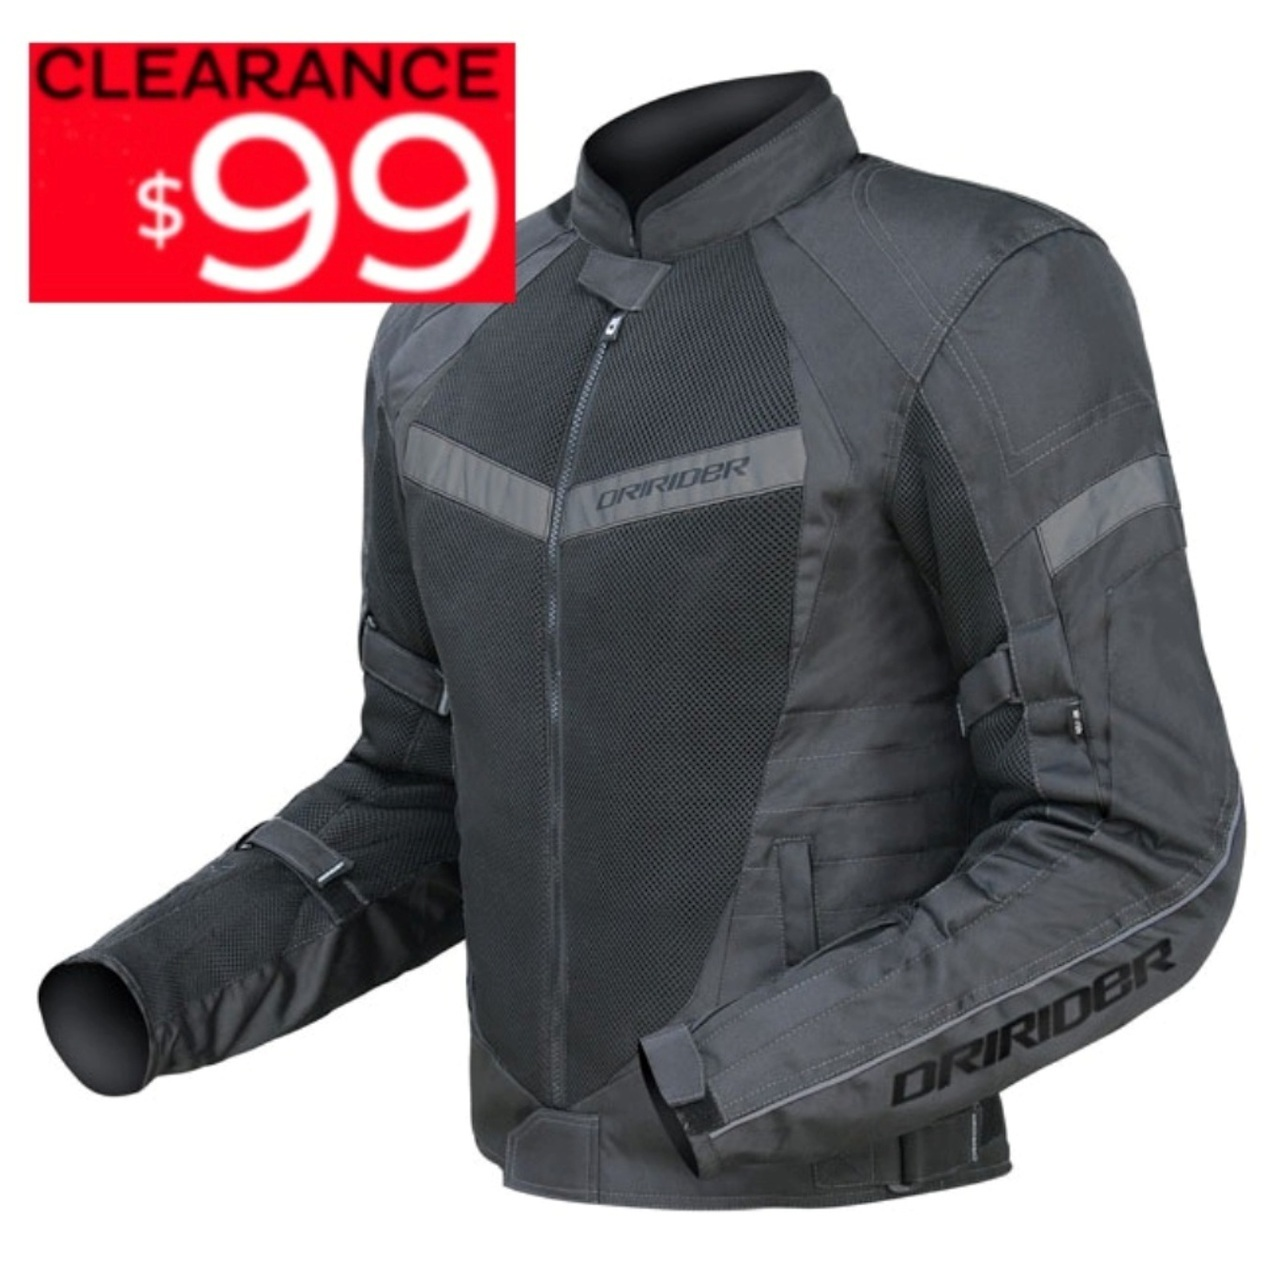 Vented Motorcycle Jackets: Protected and Cool in Summer